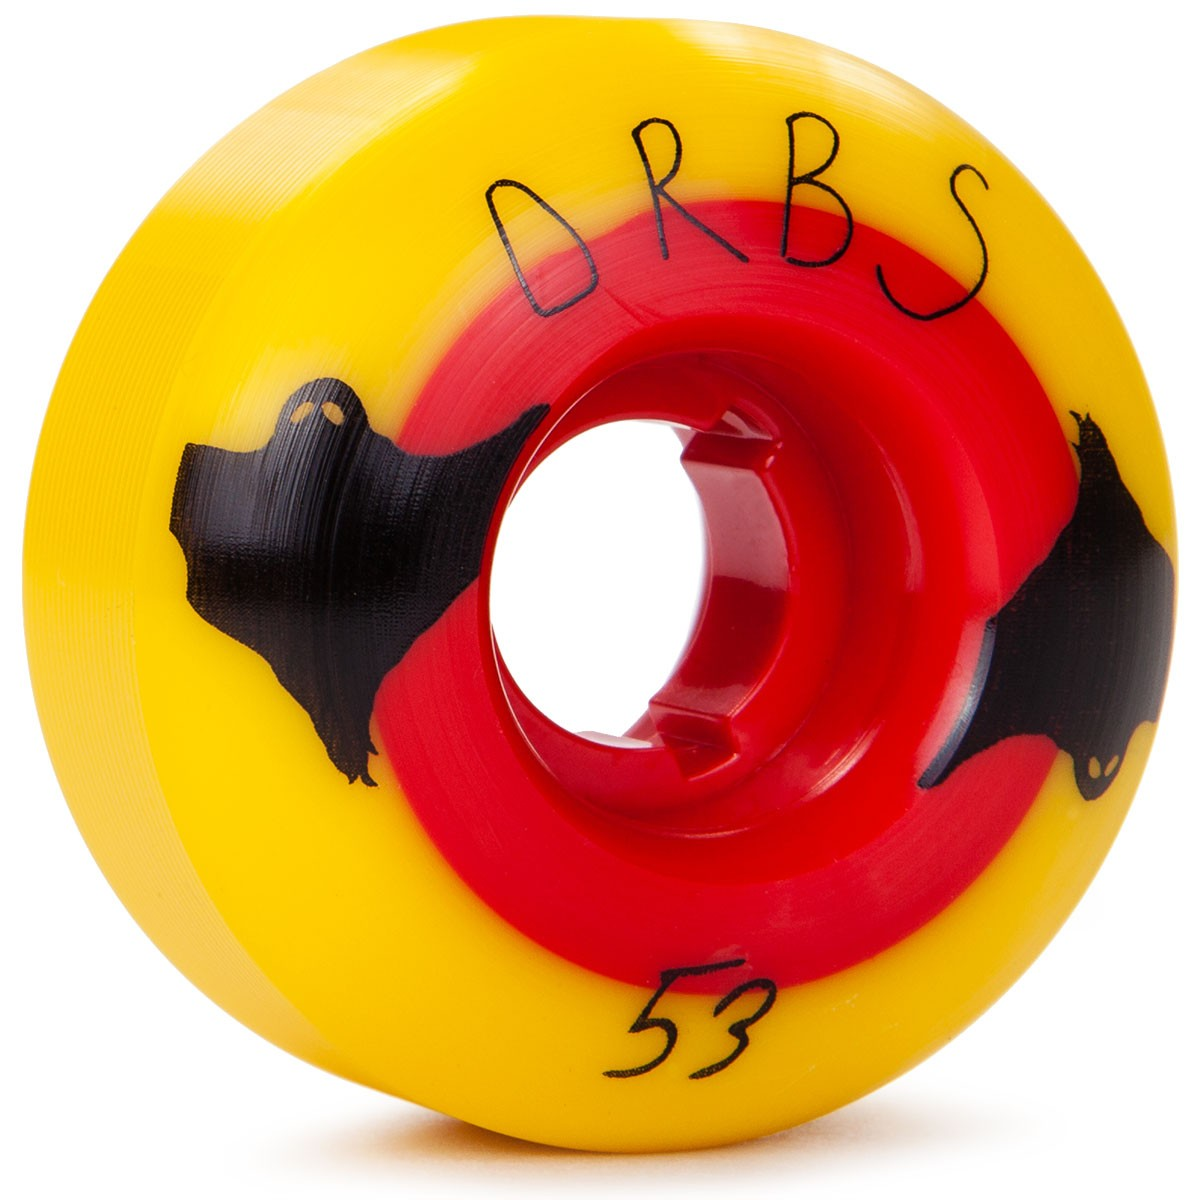 Welcome Orbs Poltergiest Skateboard Wheels - Yellow / Red - 53mm - 84B